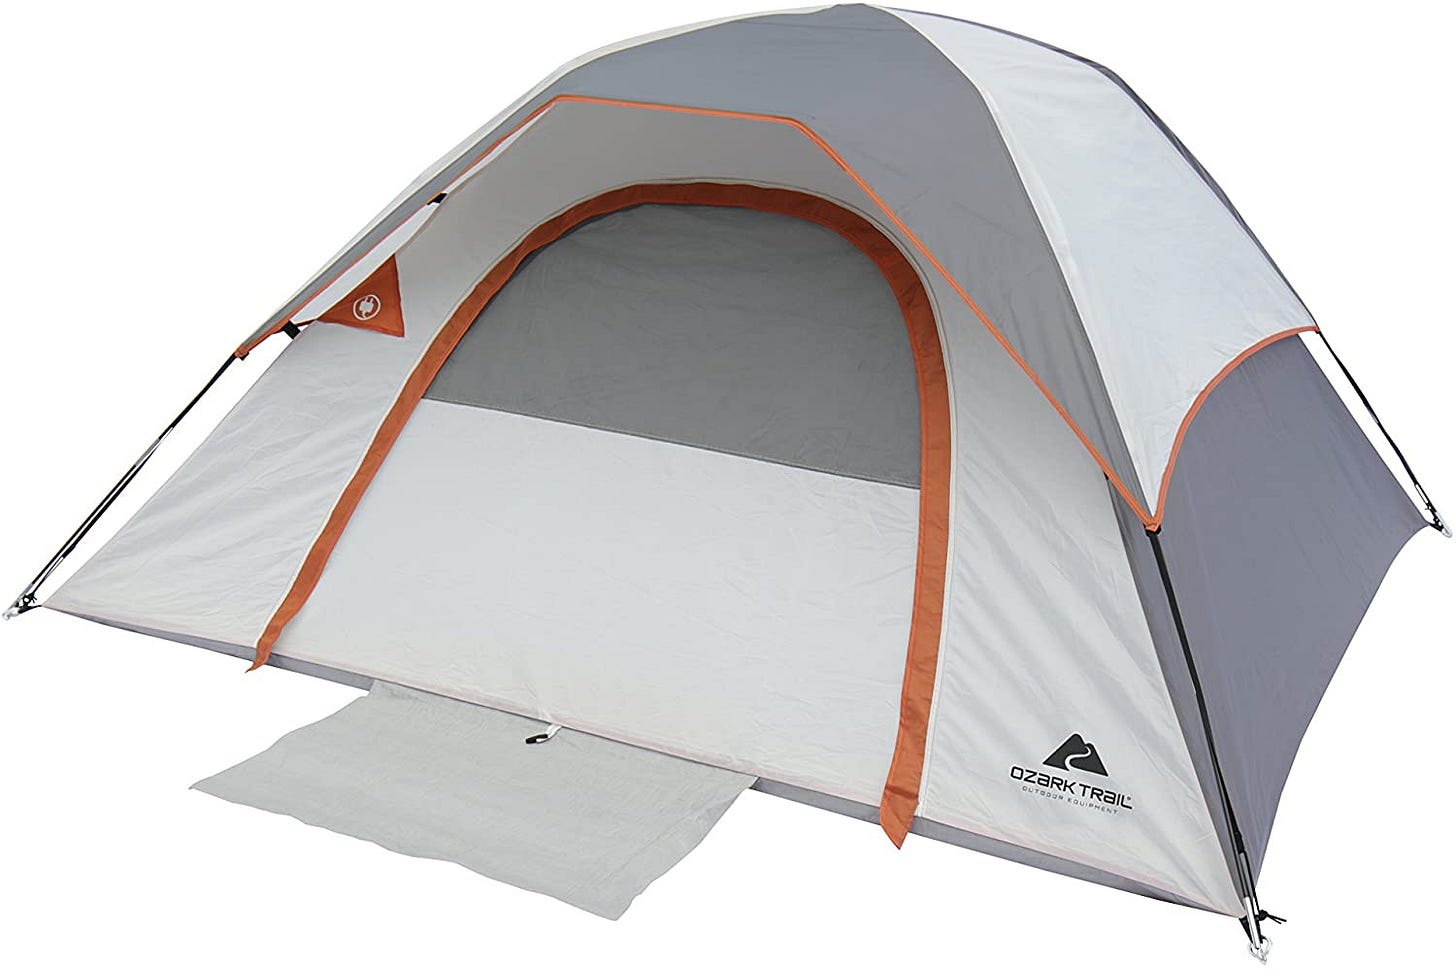 Amazon.com : Ozark Trail, 3 Person Camping Dome Tent : Sports ...